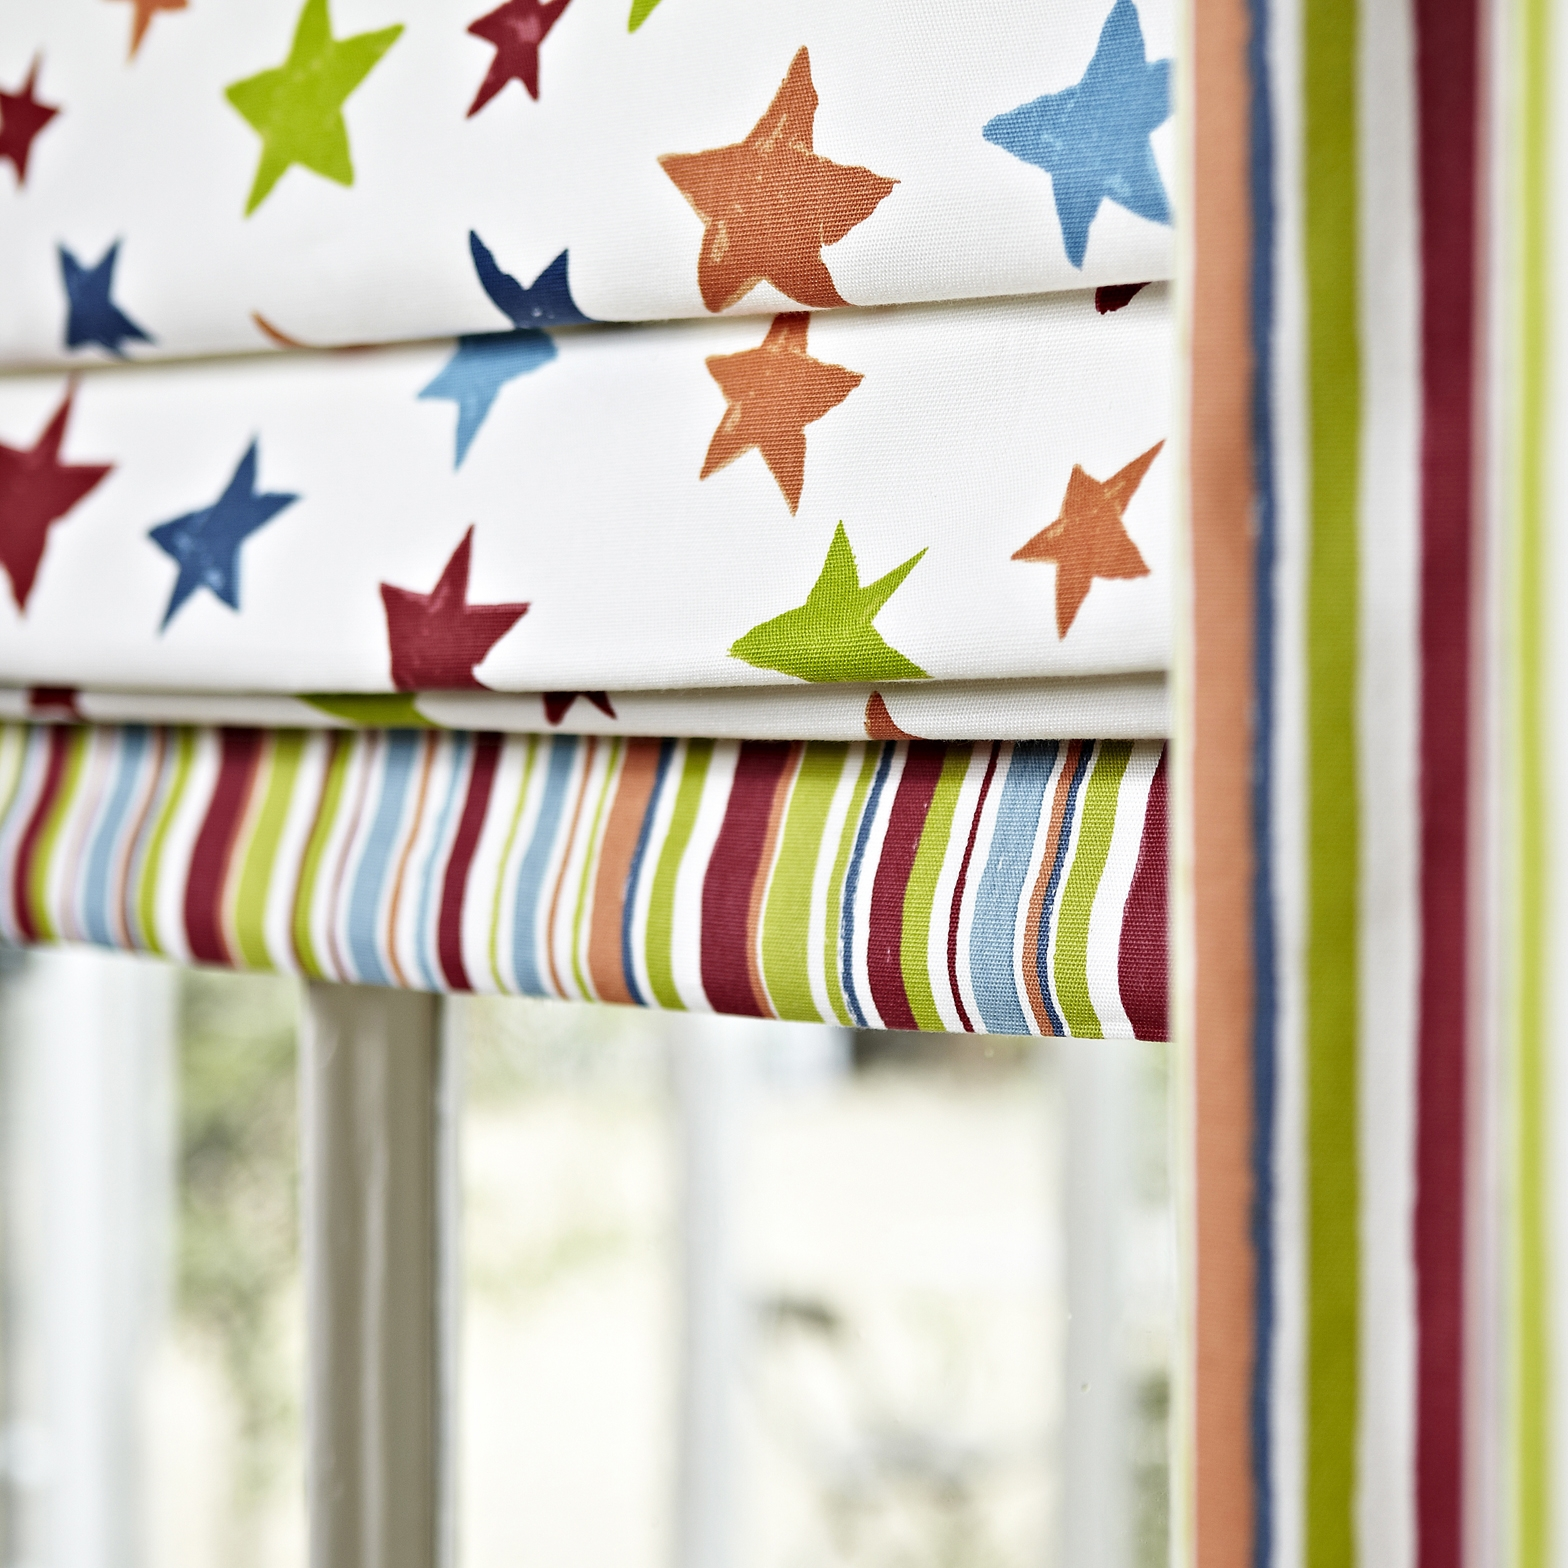 Childrens Blinds Norwich Sunblinds Within Kids Roman Blinds (Image 2 of 15)